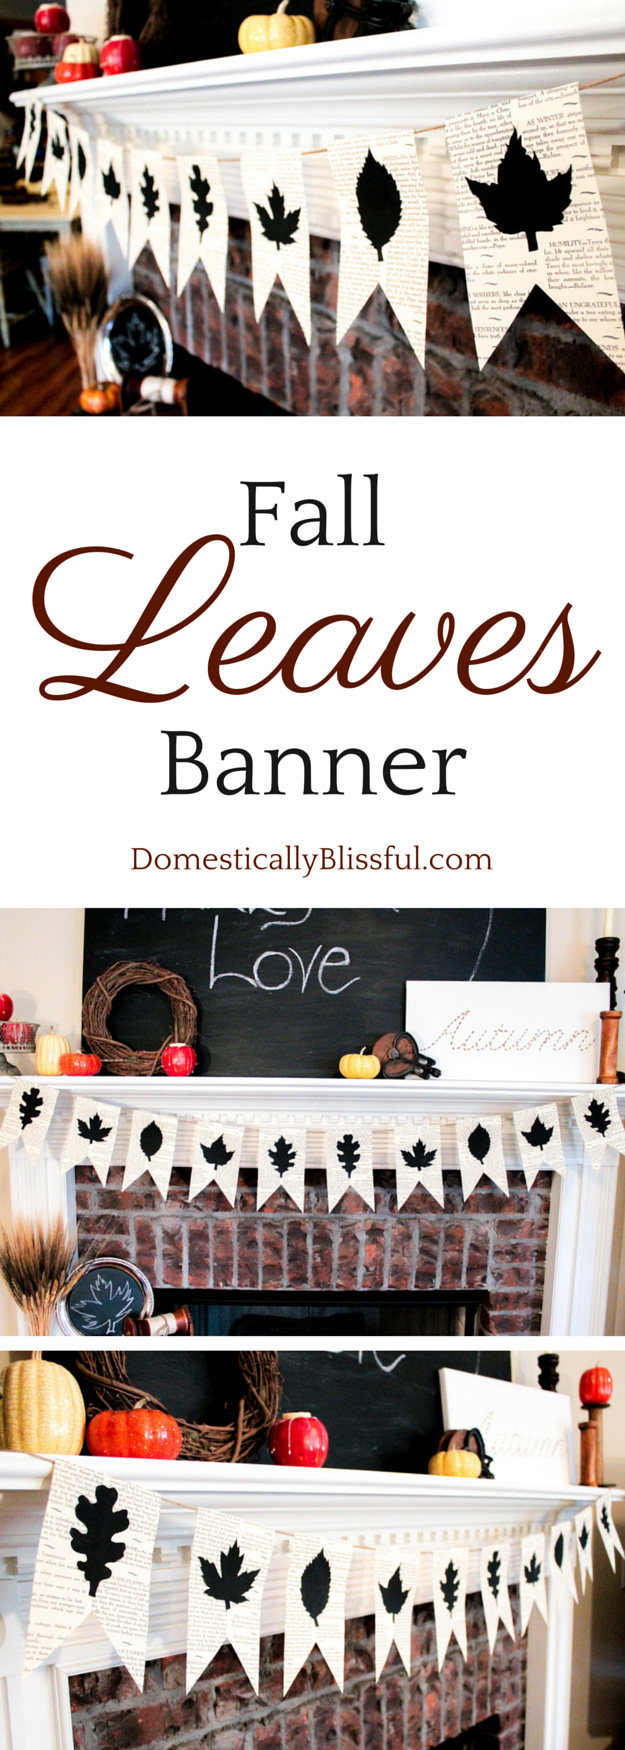 Fall Leaves Banner tutorial by Domestically Blissful